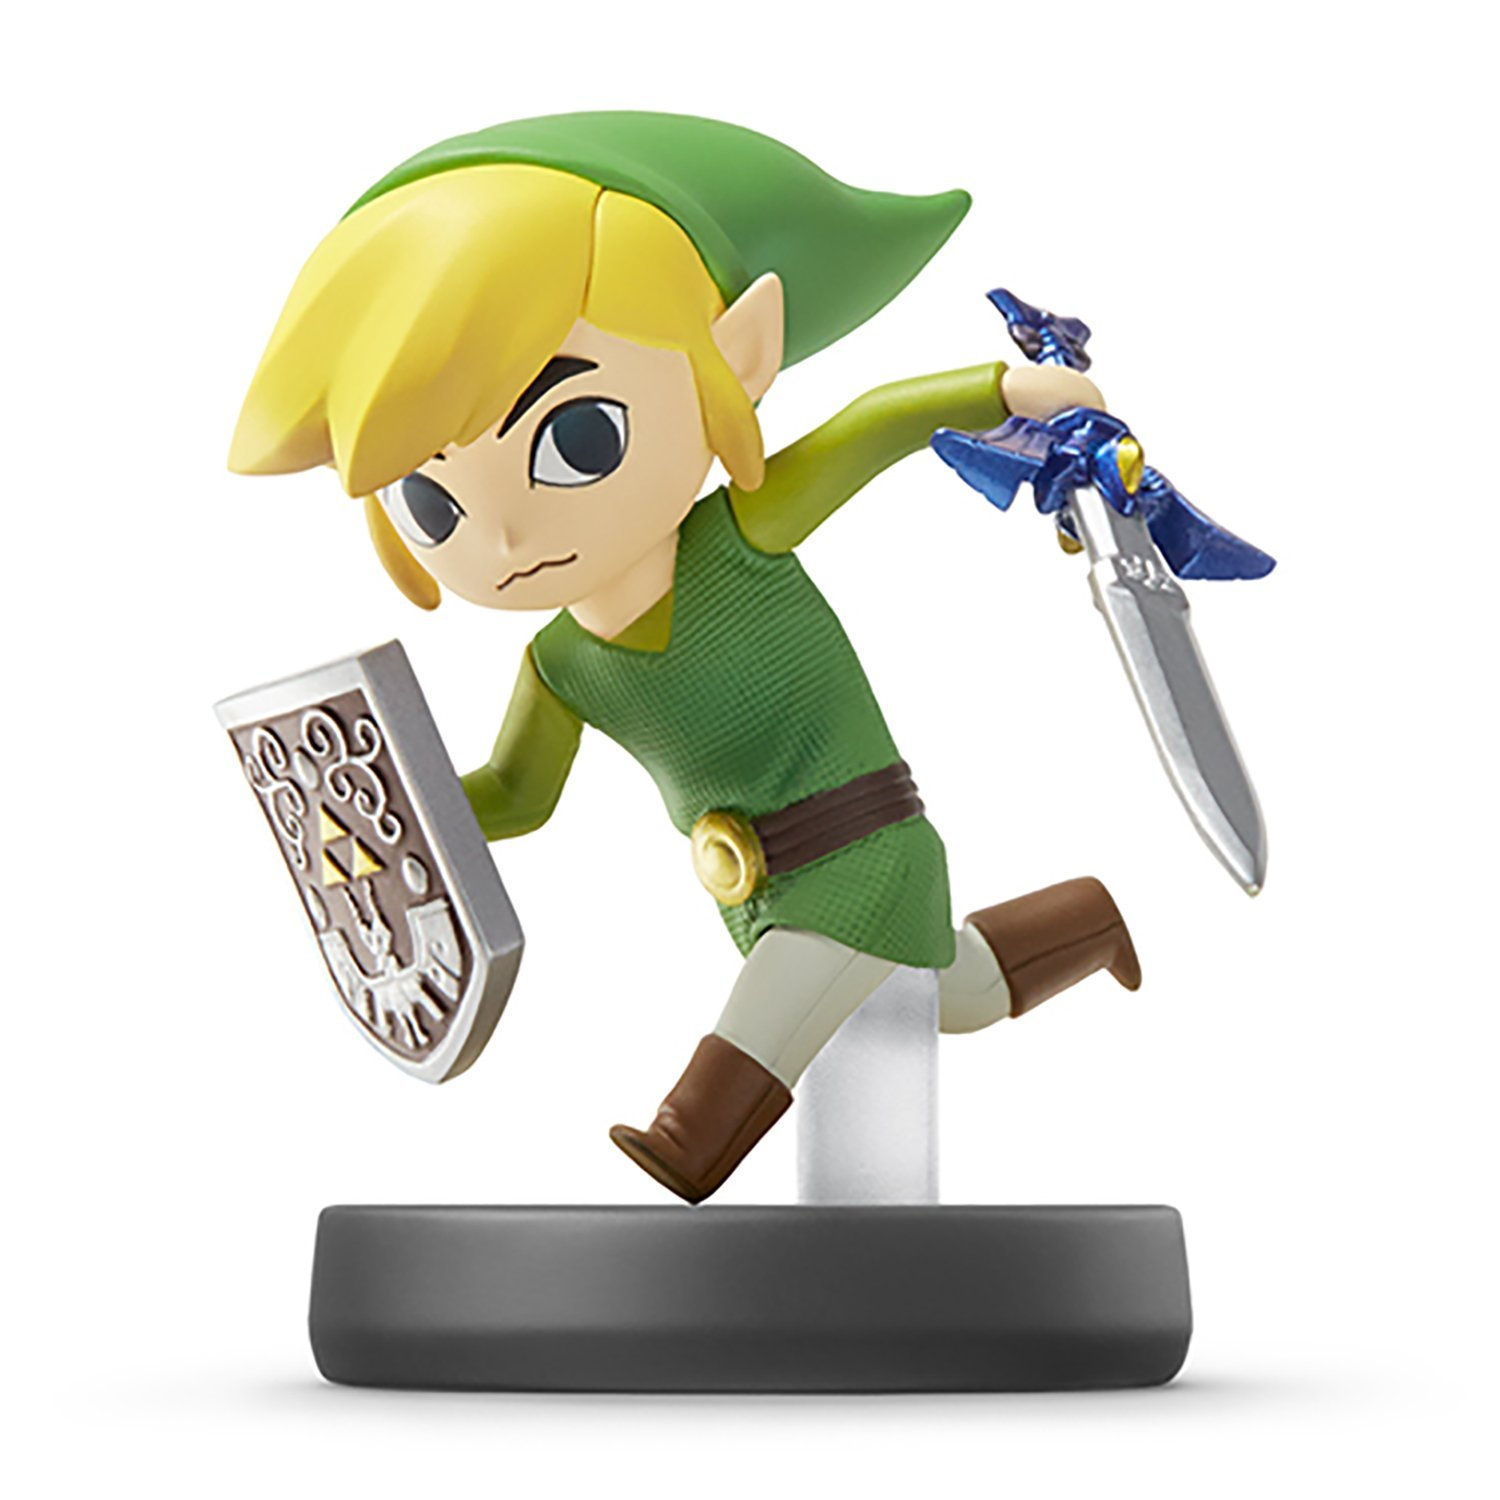 Wii U Amiibo TOON Link (Super Smash Bros. Series)